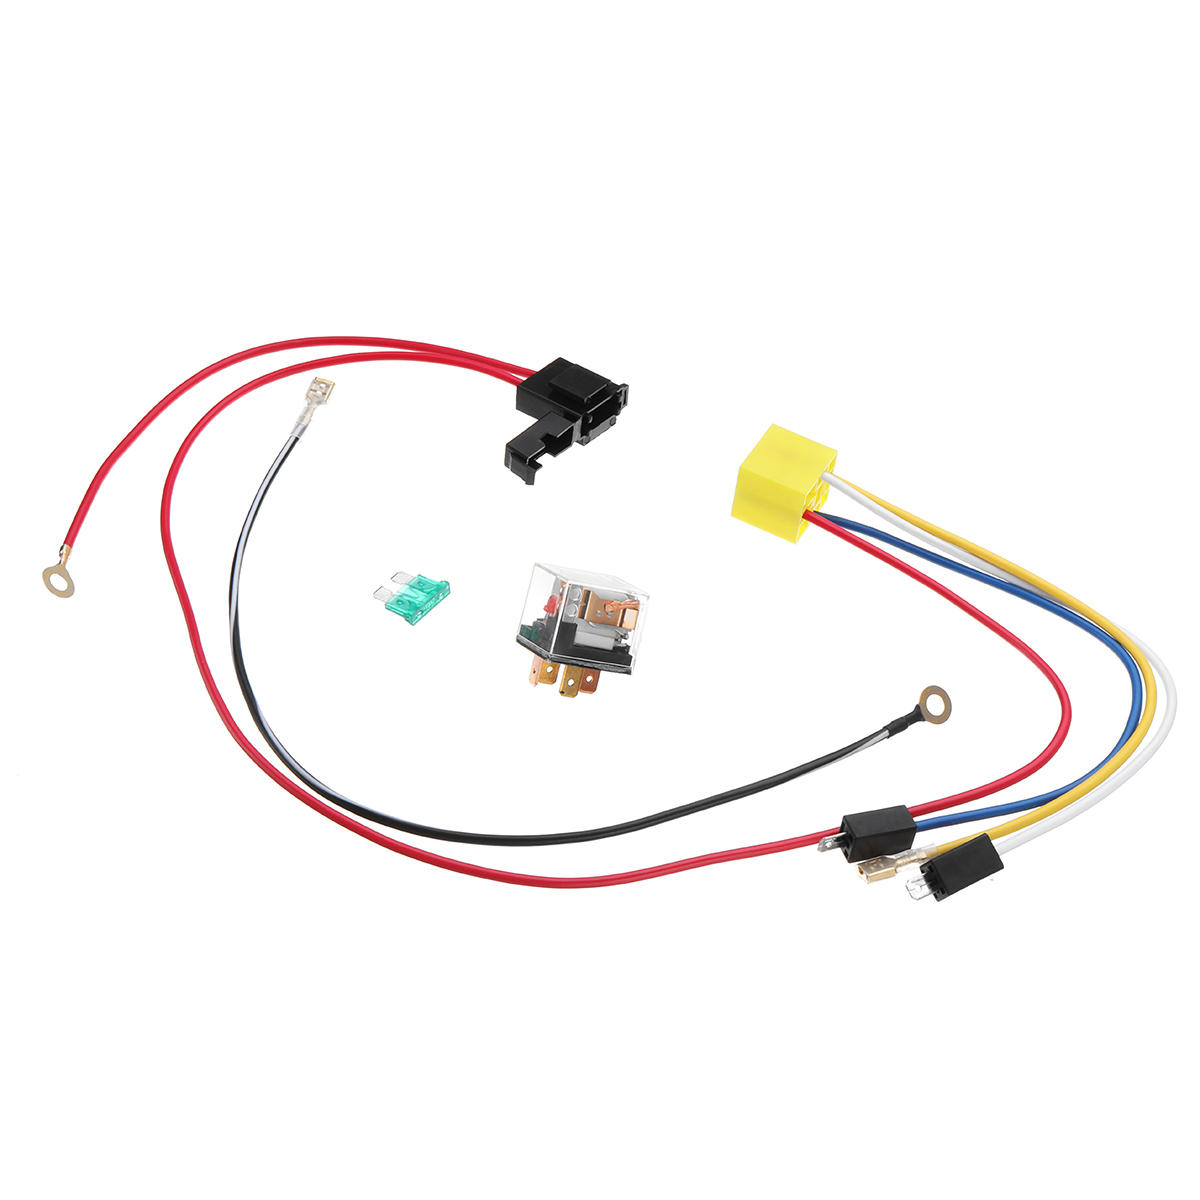 hight resolution of large image electrical automotive wiring harness replacement servo 12v dual tone electric air horn wiring harness